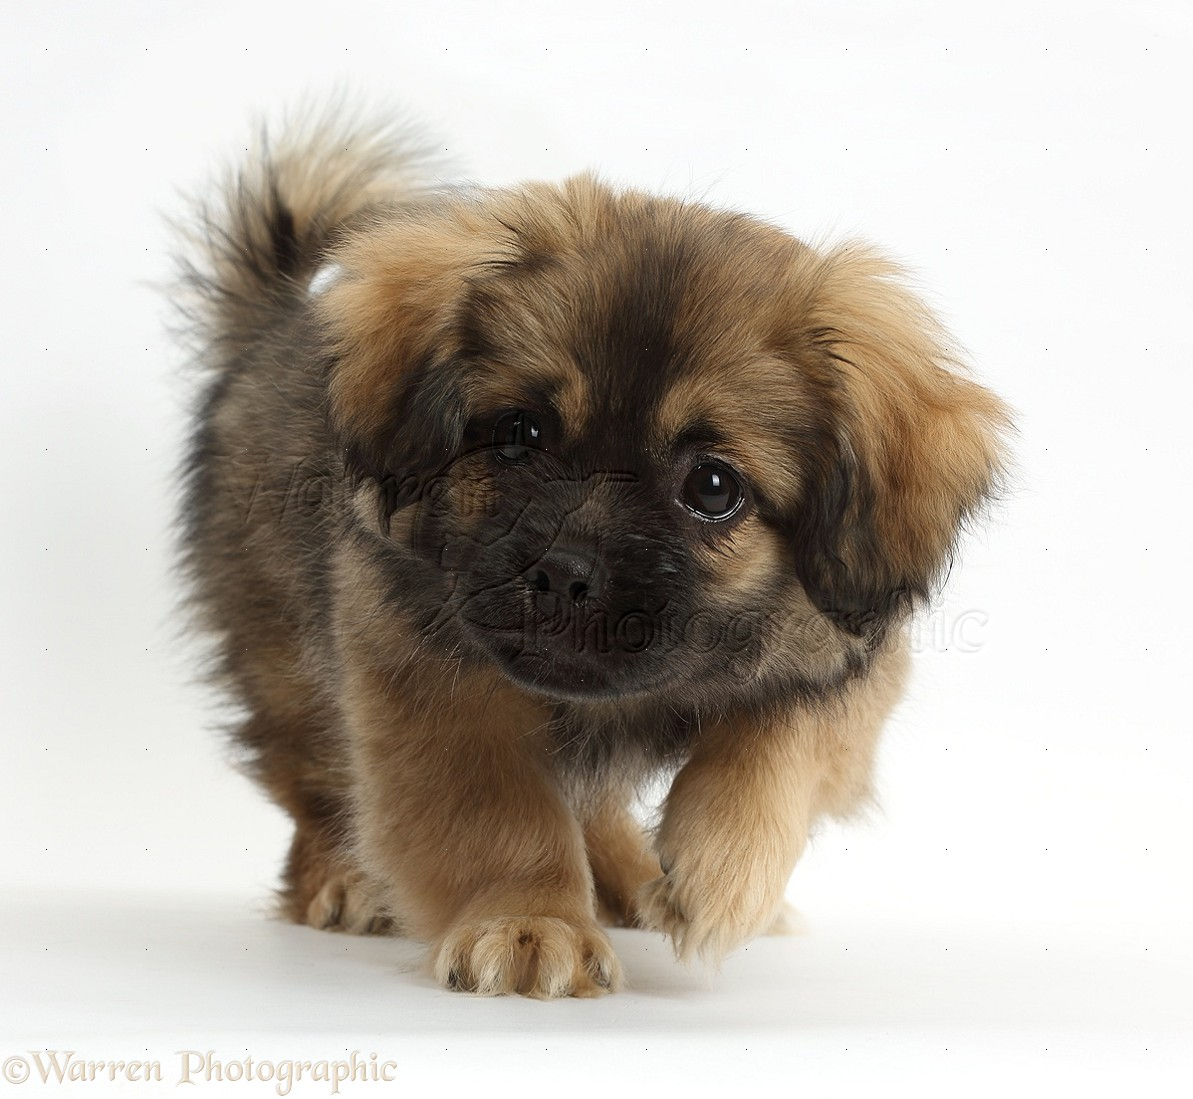 Tibetan Spaniel Dog Puppy Photo Wp38113